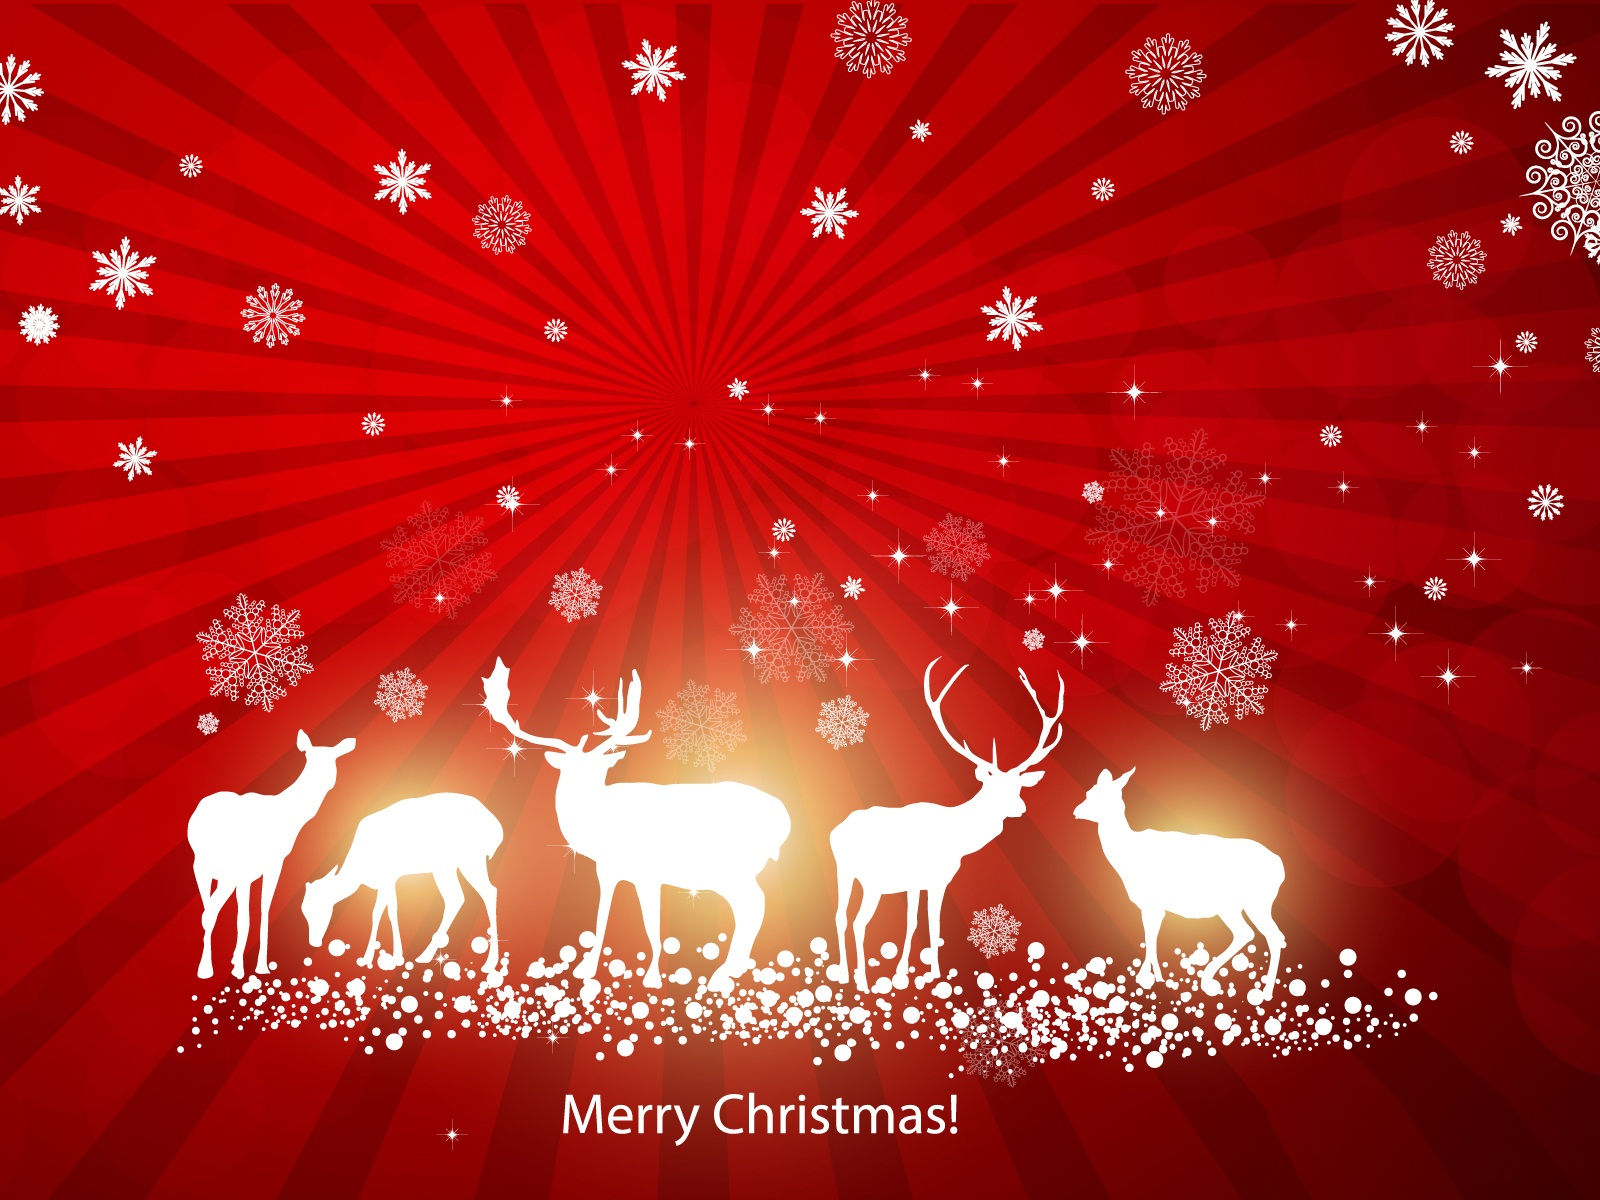 Merry Christmas Wallpapers 1600x1200